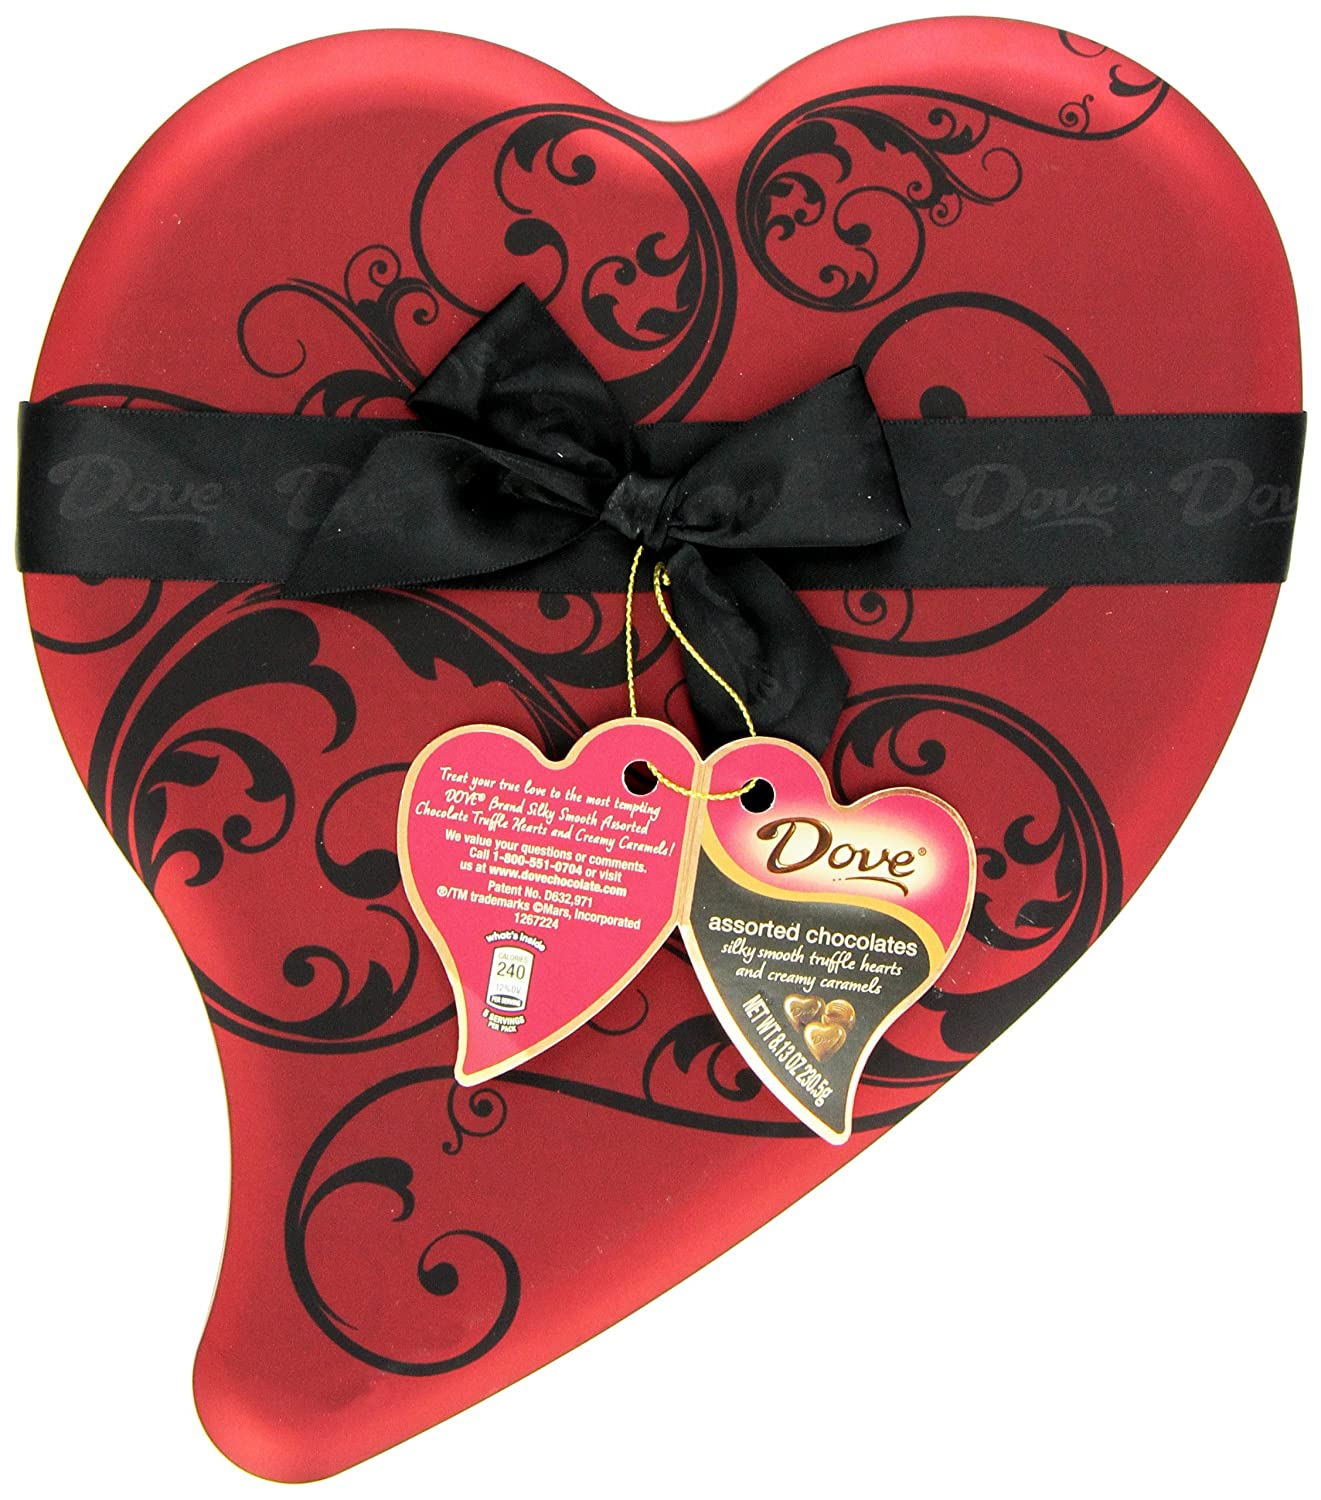 Amazon.com : DOVE Chocolate Valentine's Select Chocolates, 8.13 ...